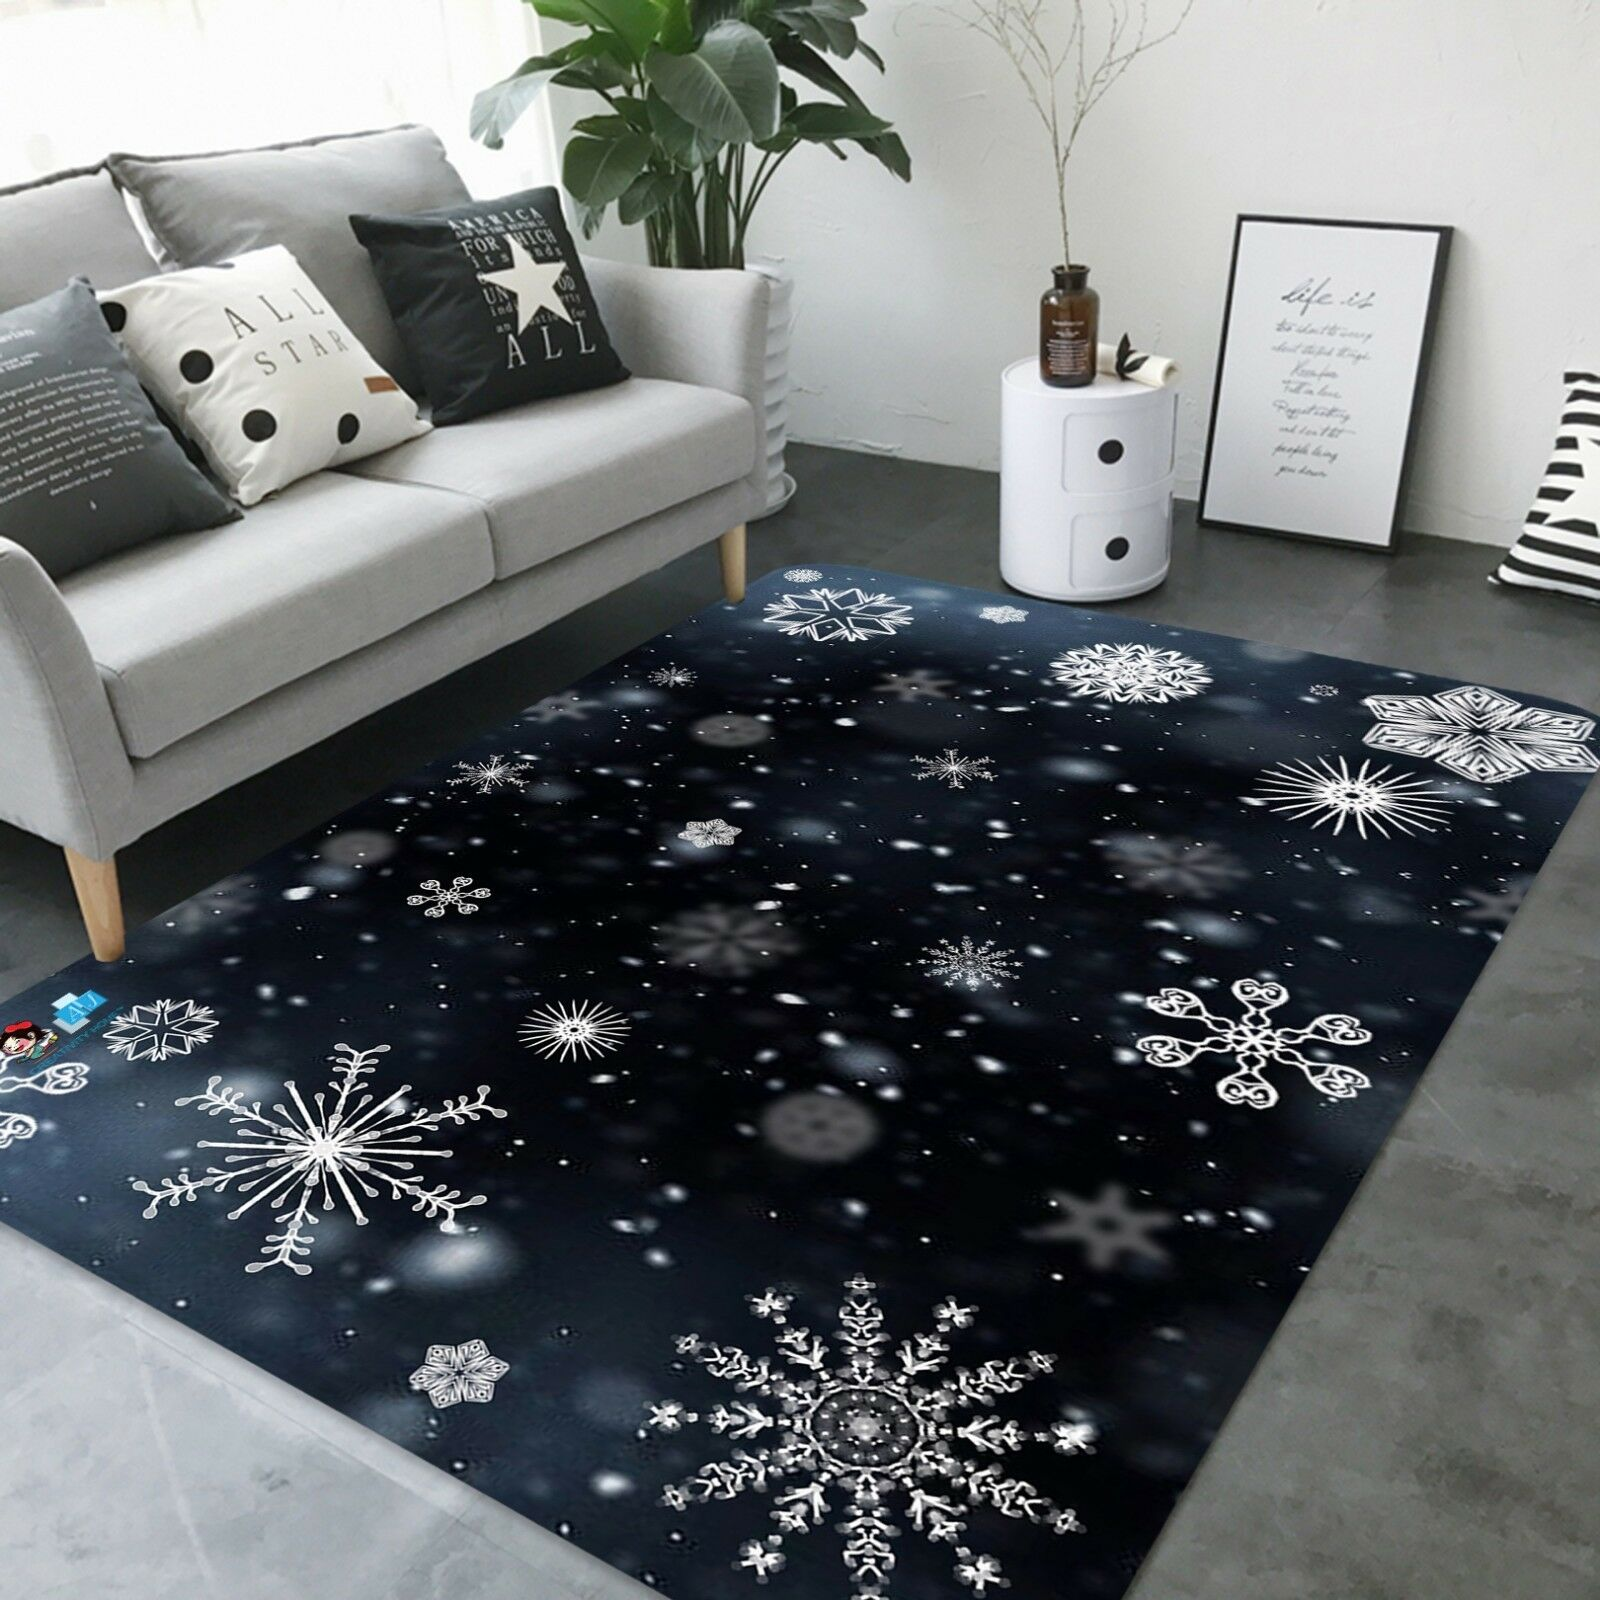 3D Christmas Xmas 780 780 780 Non Slip Rug Mat Room Mat Quality Elegant Photo Carpet AU 325c19